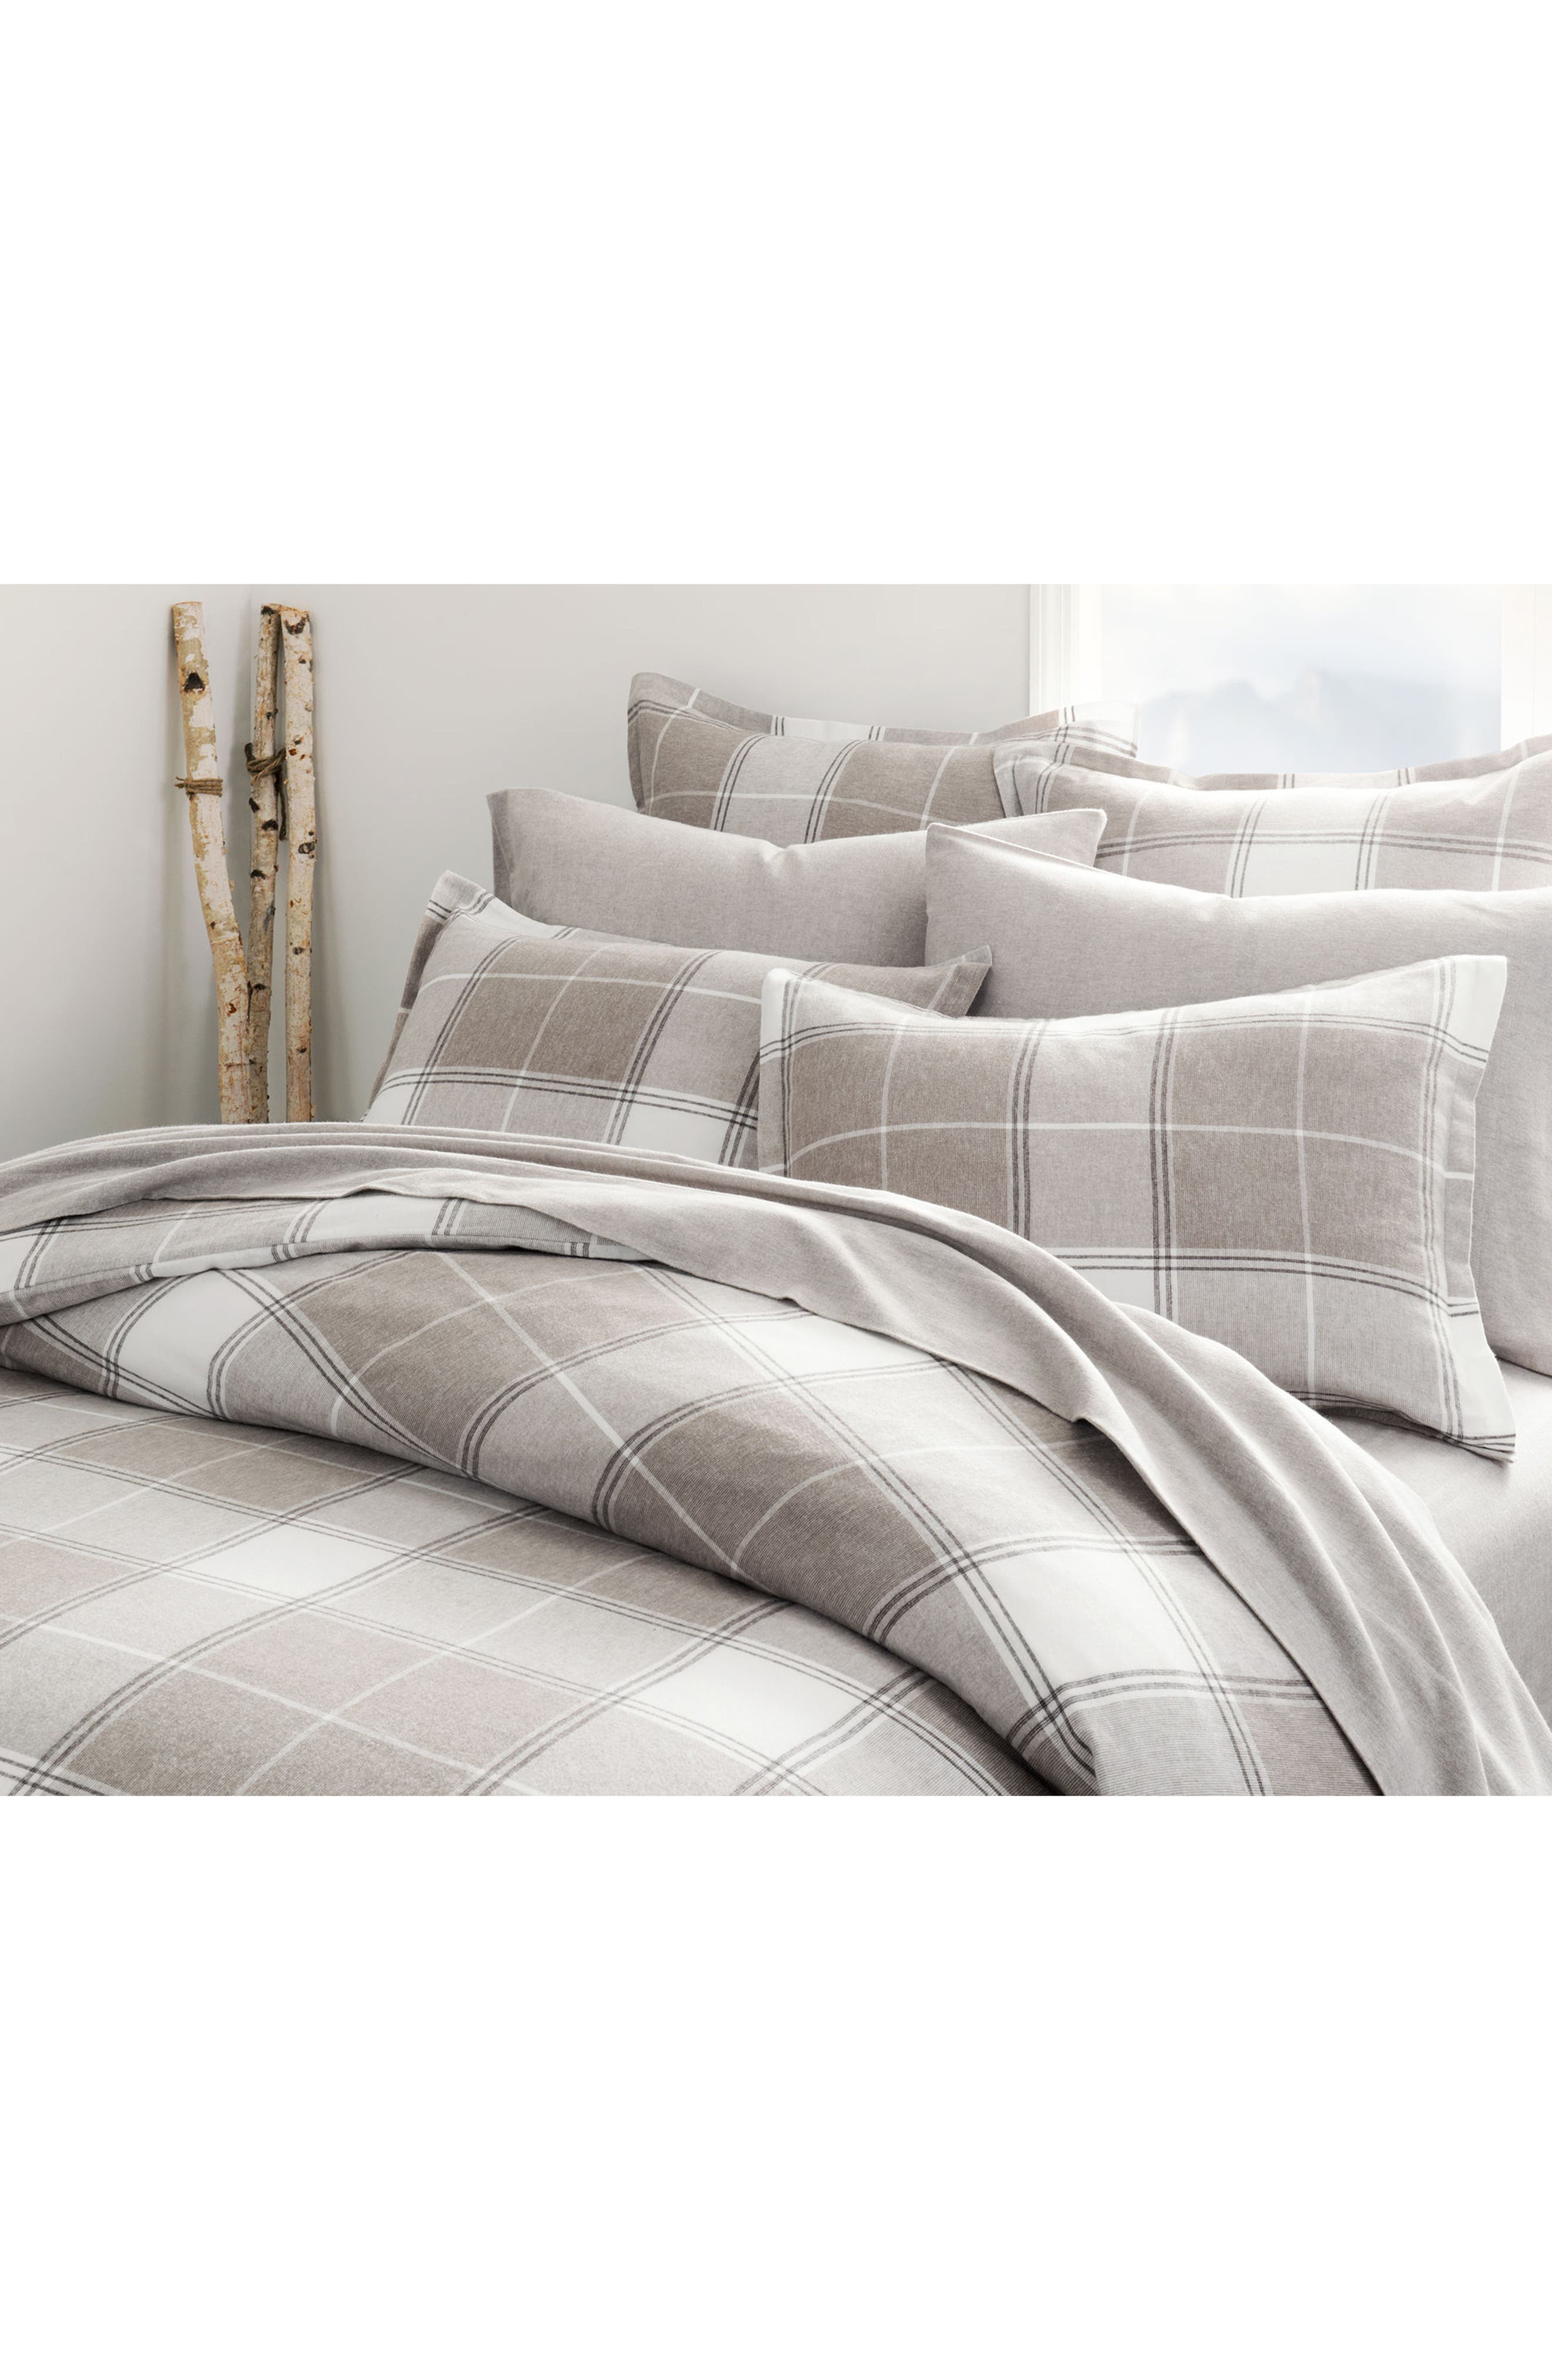 Main Image - UGG® Flannel Luxe Duvet Cover